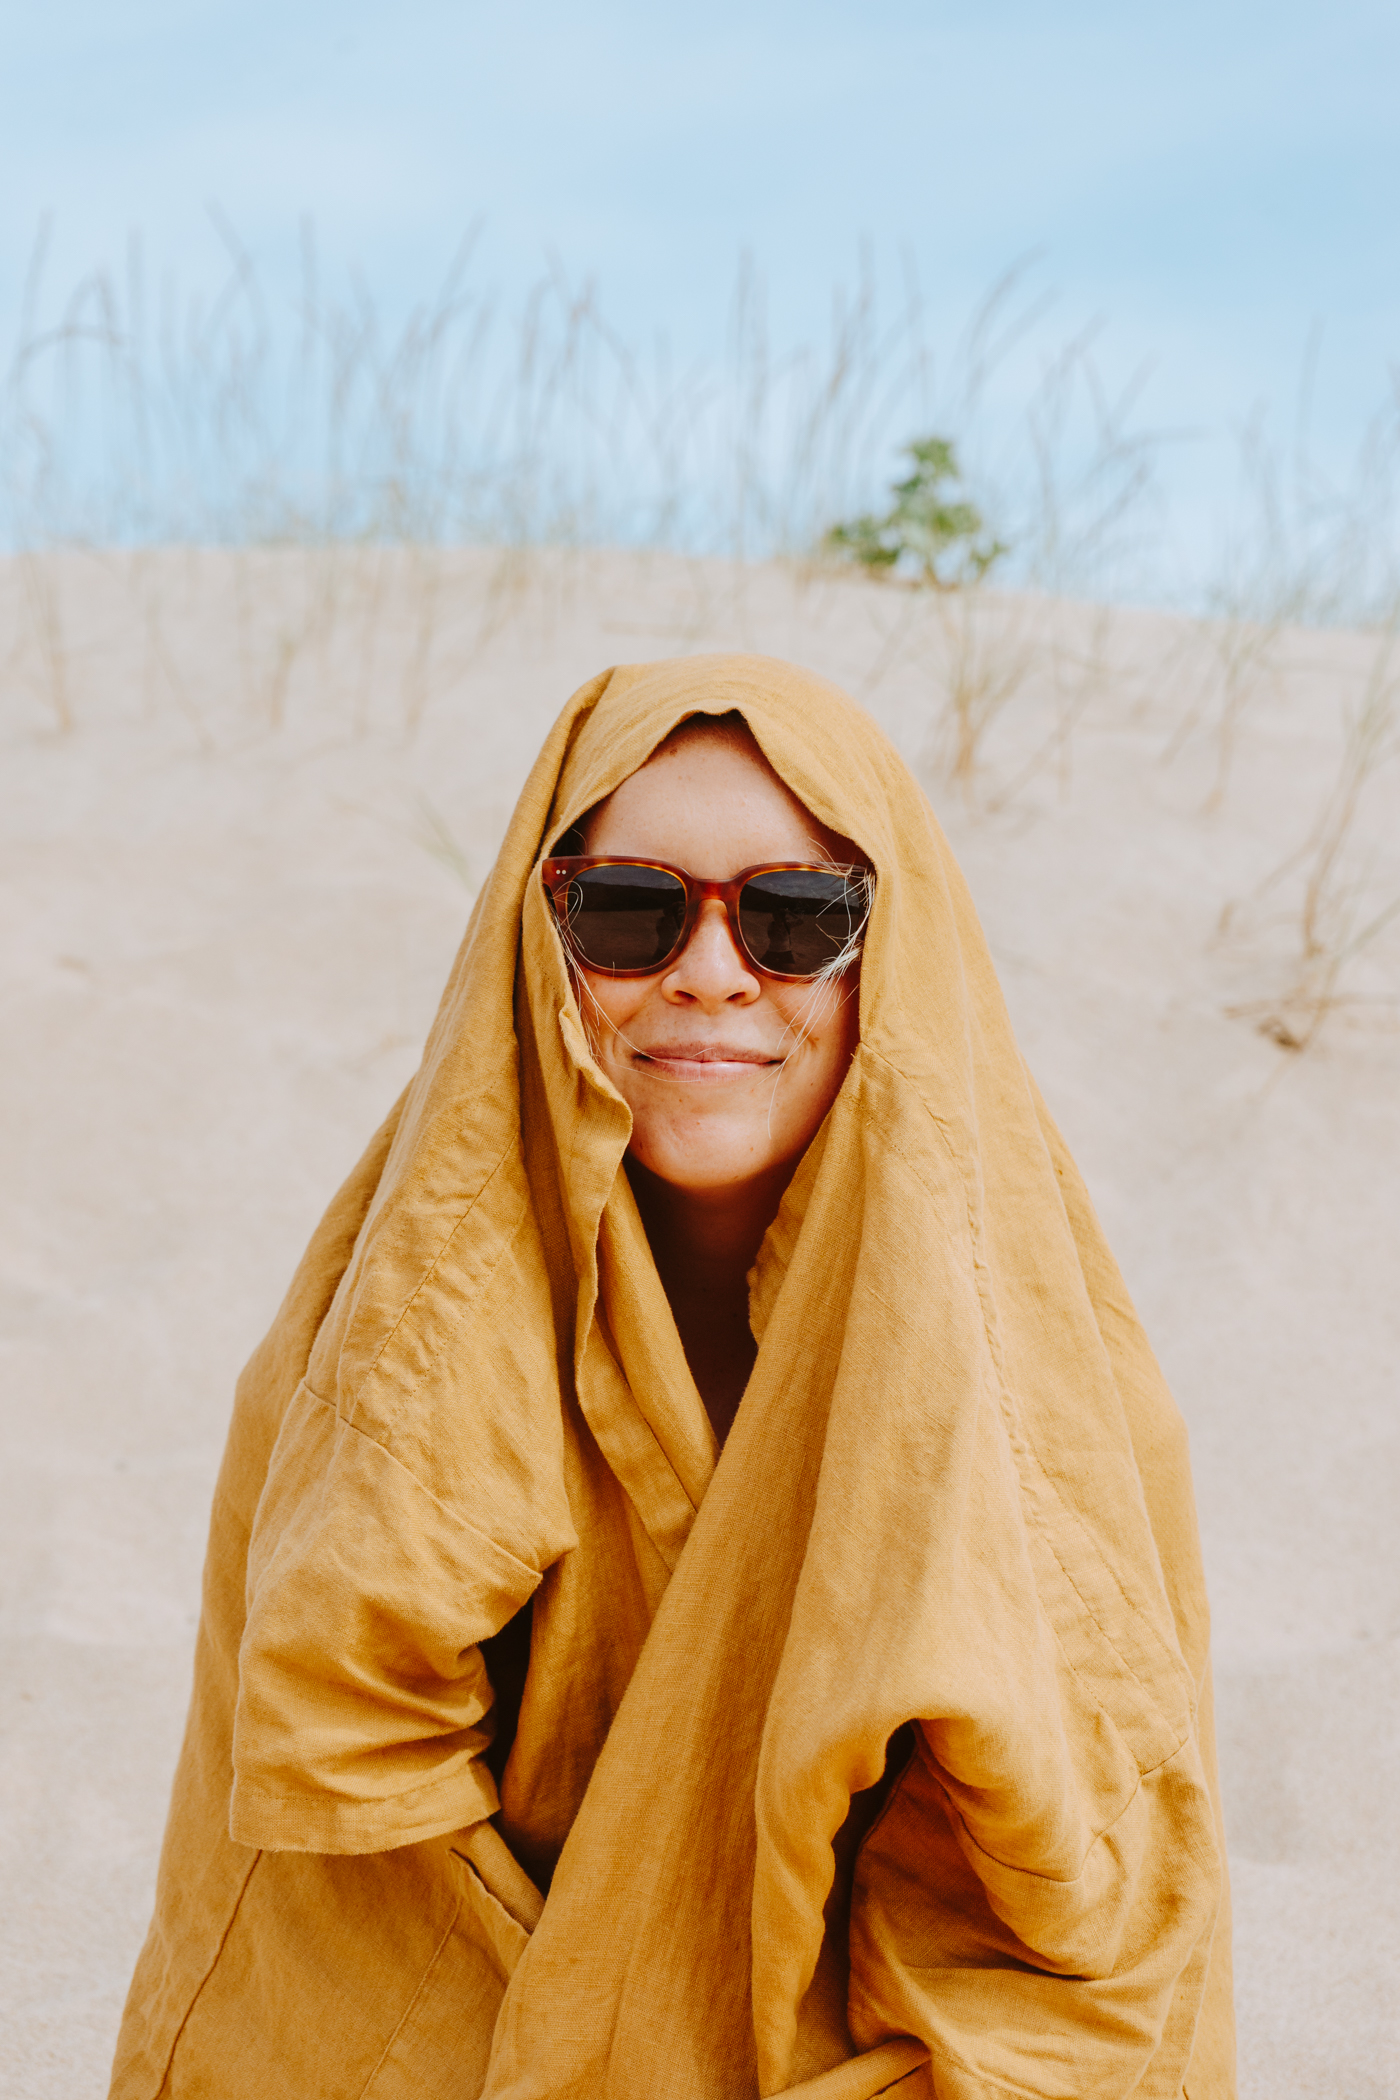 Hiding from the cold wind, haha.